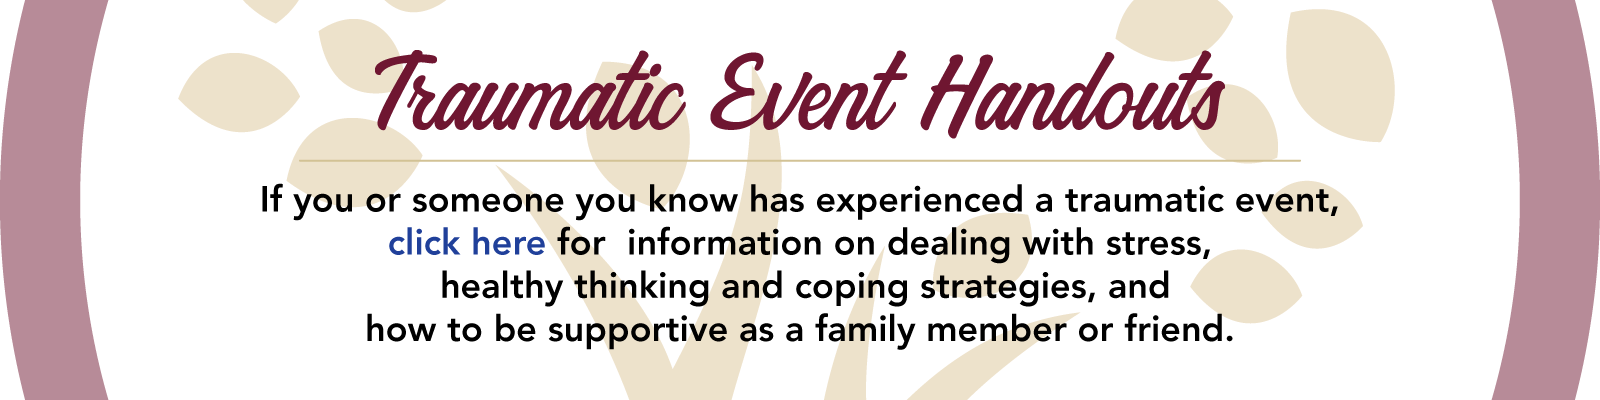 If you or someone you know has experienced a traumatic event, click here for  information on dealing with stress,  healthy thinking and coping strategies, and how to be supportive as a family member or friend.